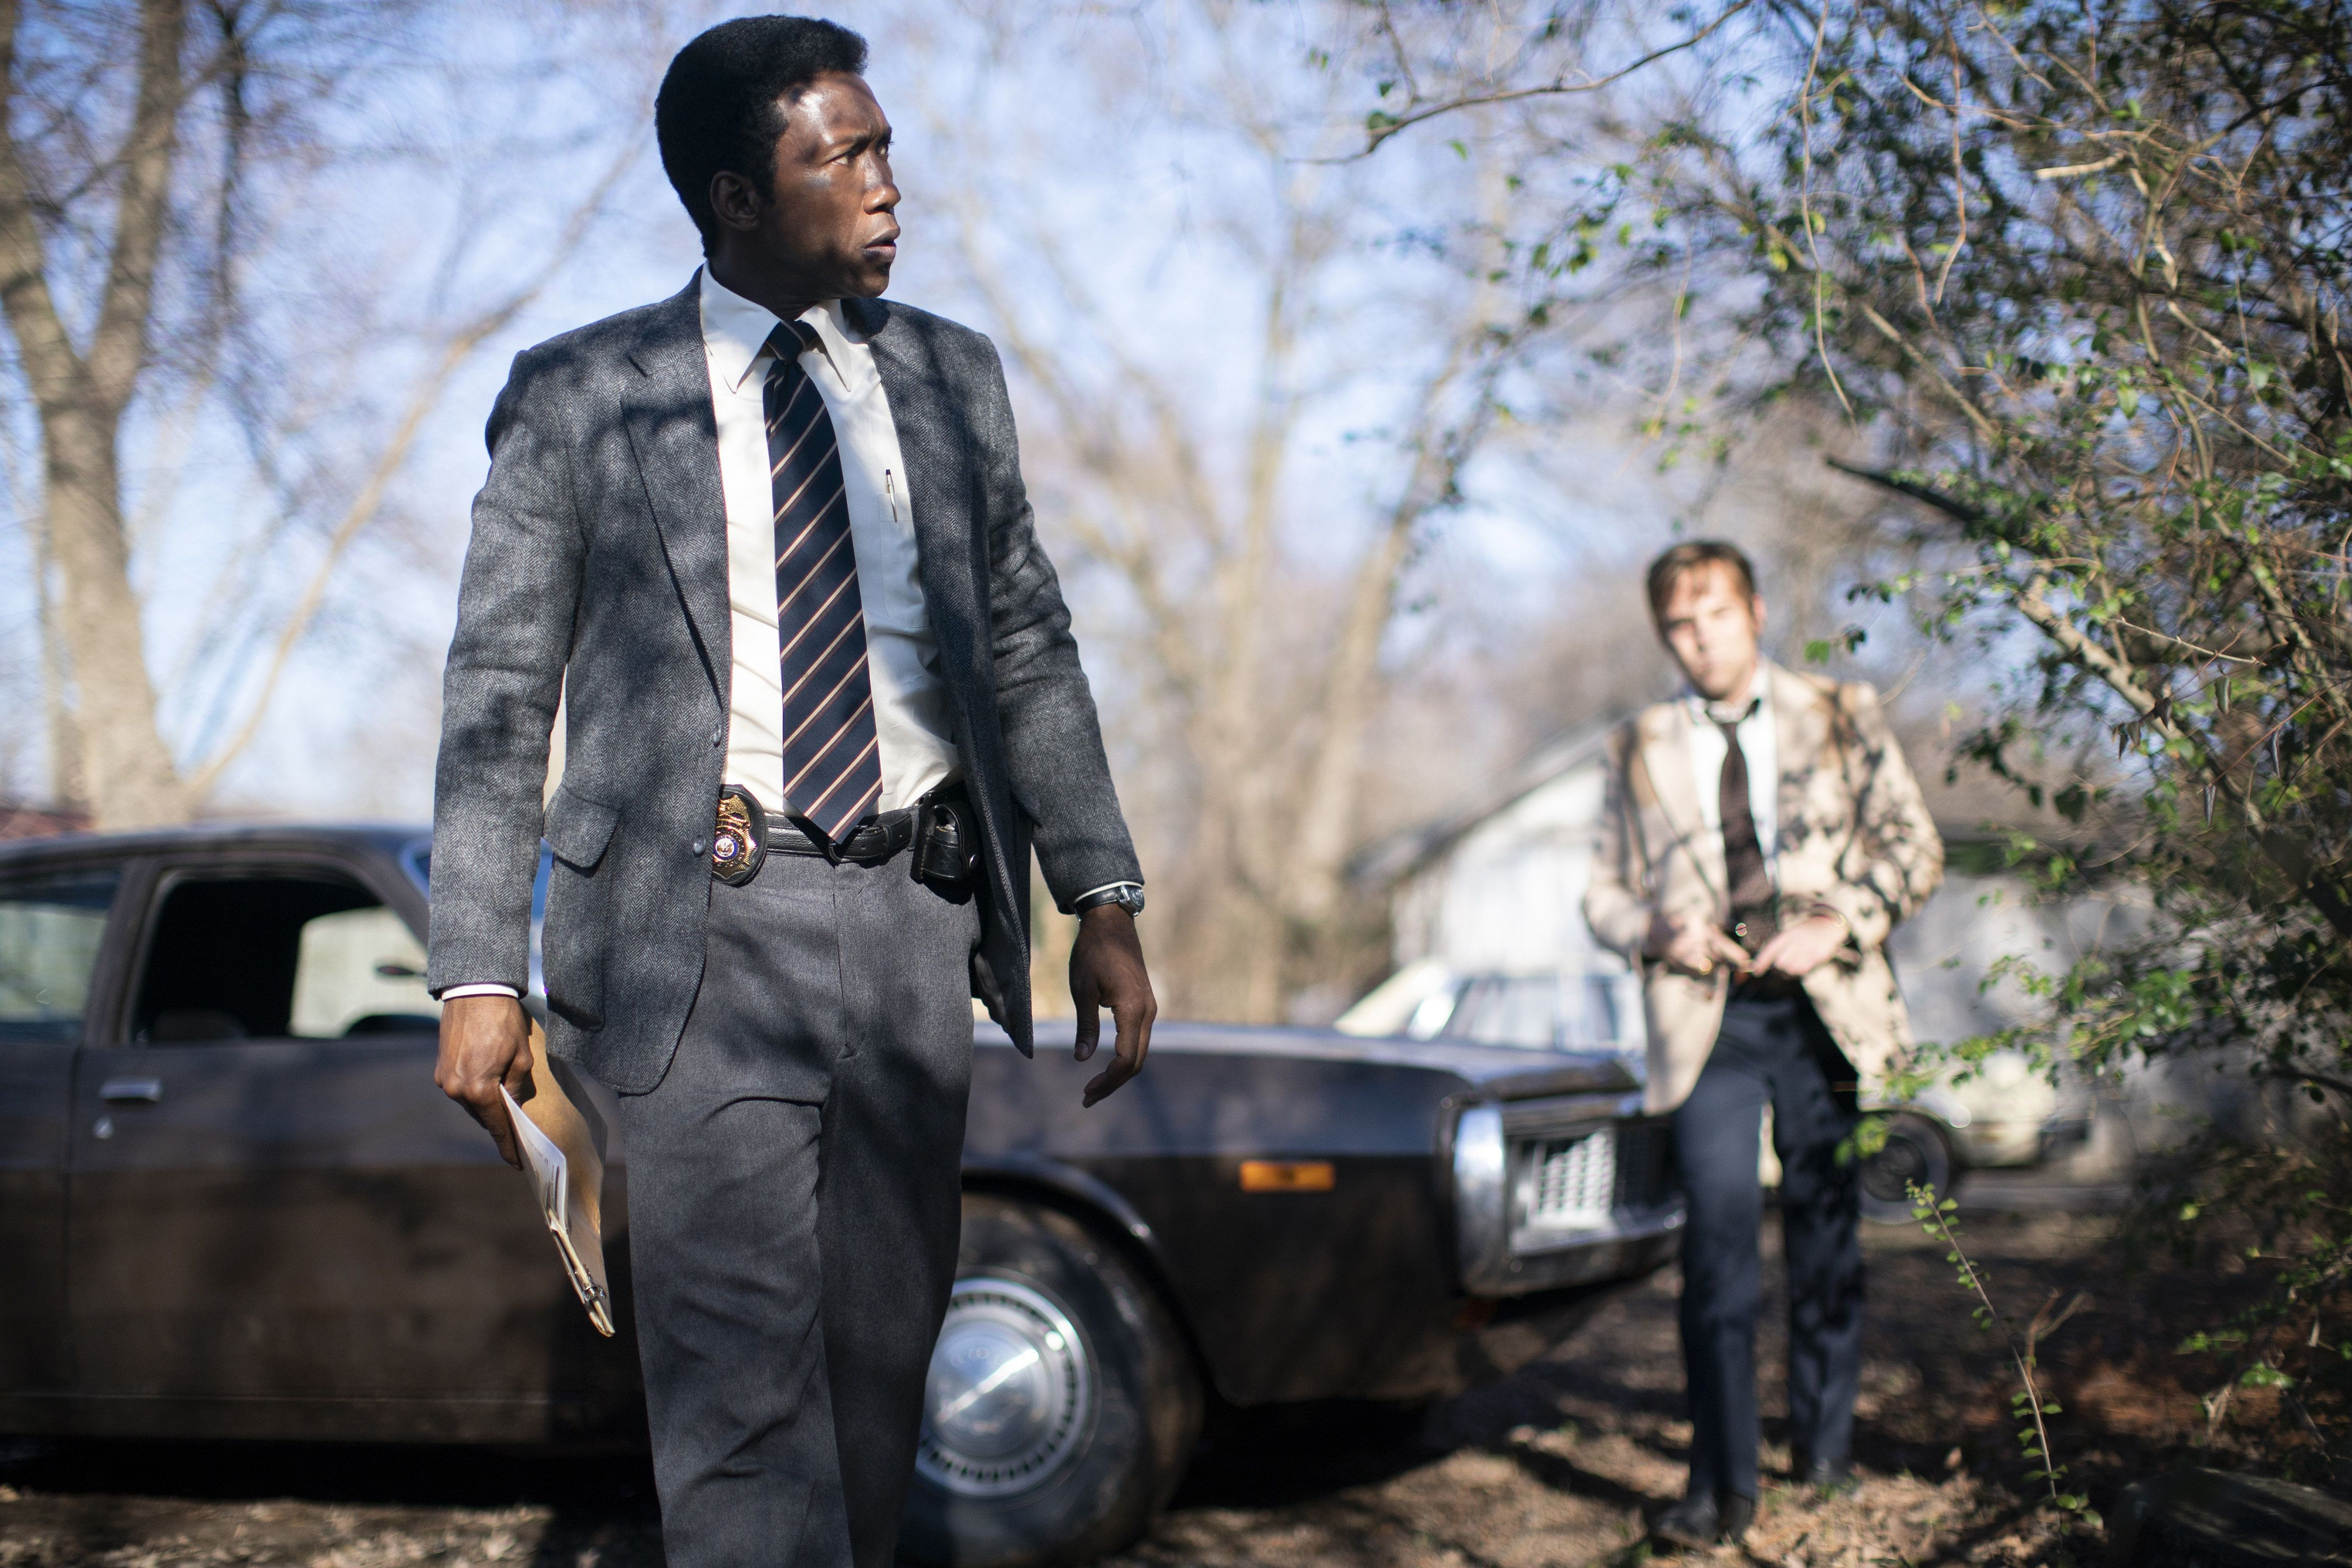 What To Expect From 'True Detective' Season 3, Another Crime Show Set In The Ozarks